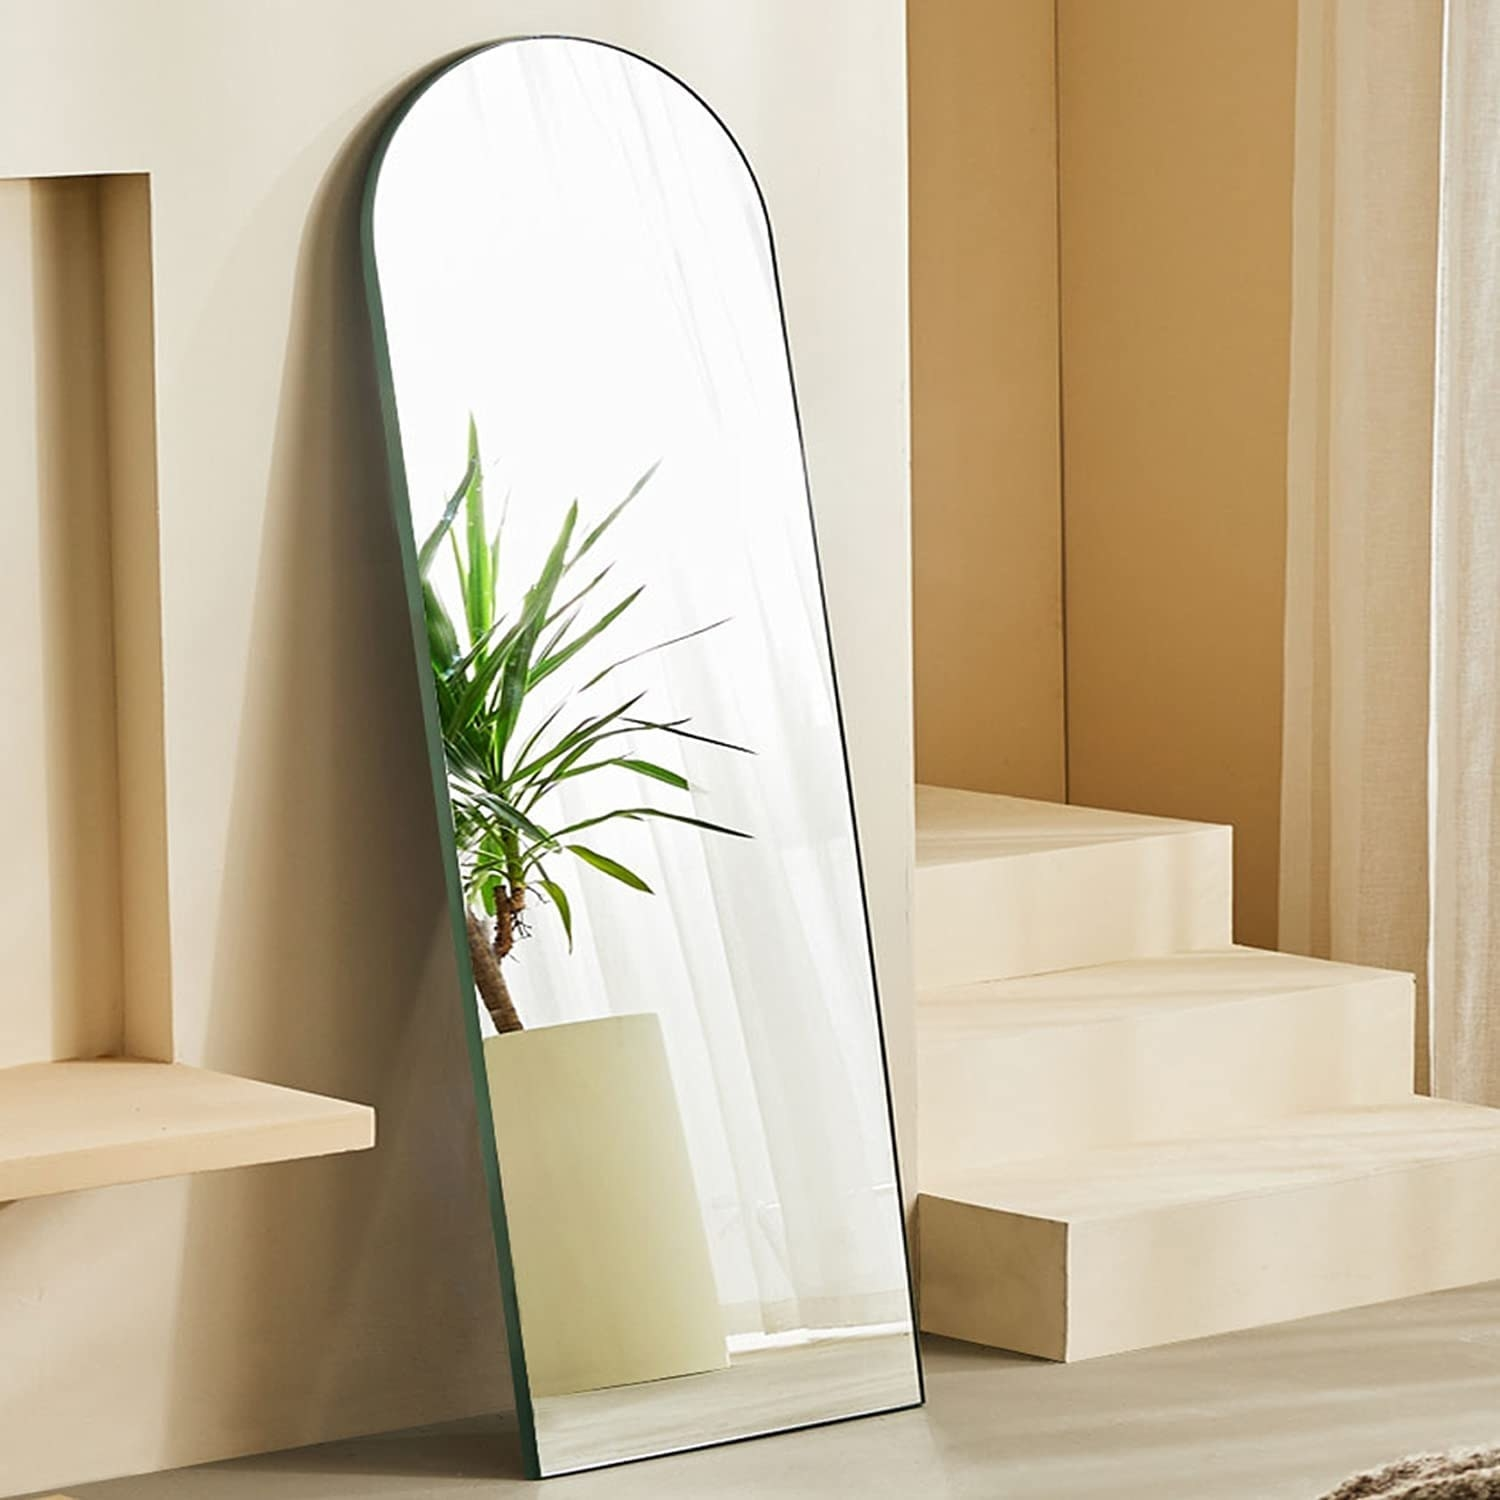 full length mirror with arch at top. it is leaning against a wall and has a green outer frame.